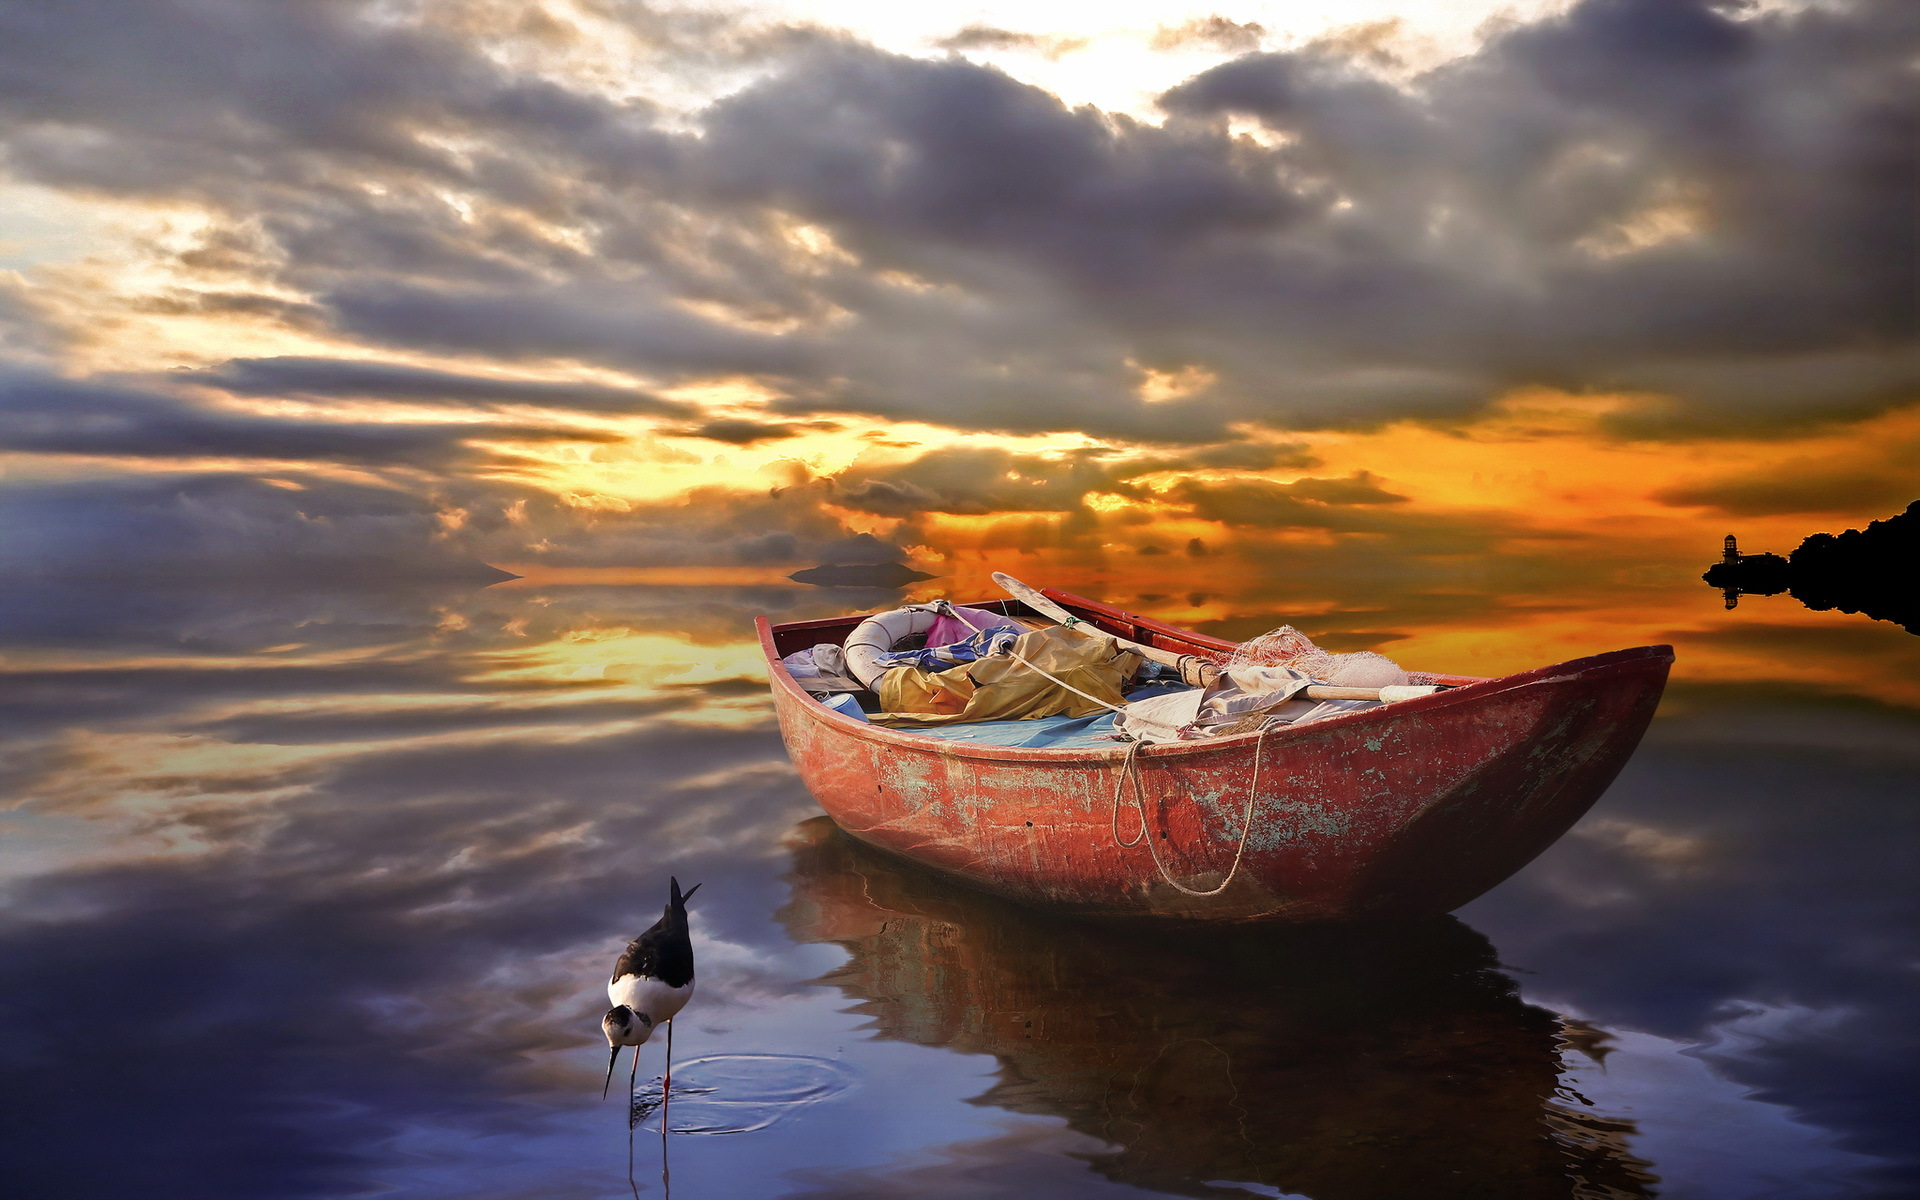 Boat And Ocean Wallpaper Desktop Wallpaper WallpaperLepi 1920x1200